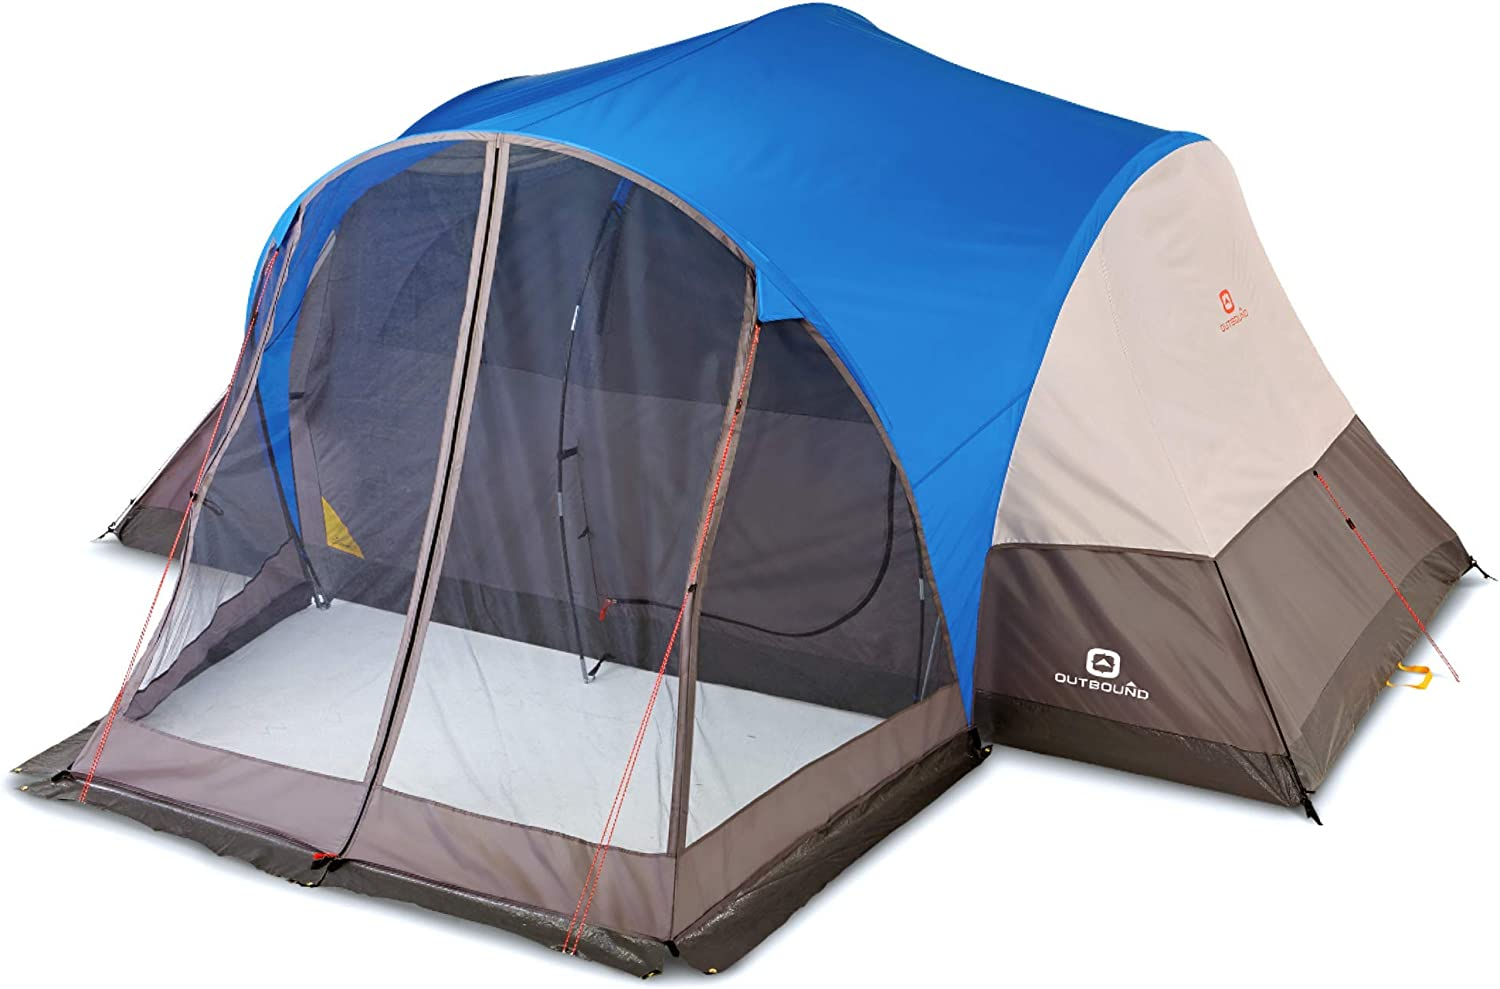 Outbound Tent with Screen Porch image